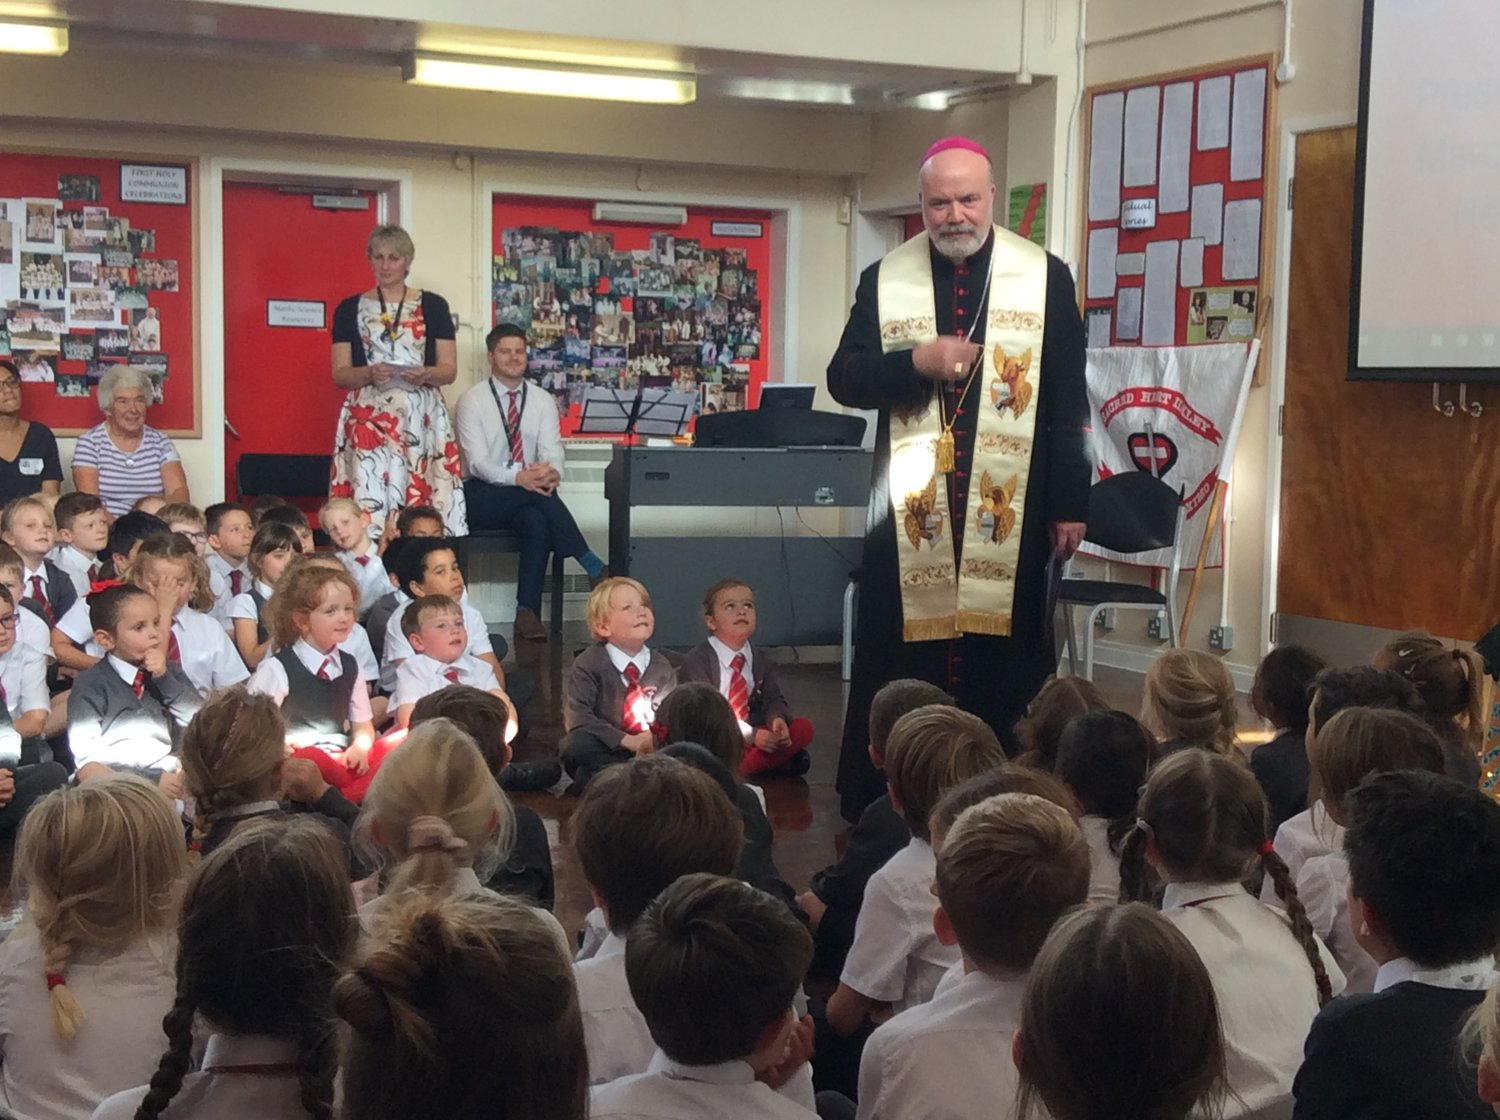 Bishop Marcus receives an enthusiastic welcome at Sacred Heart